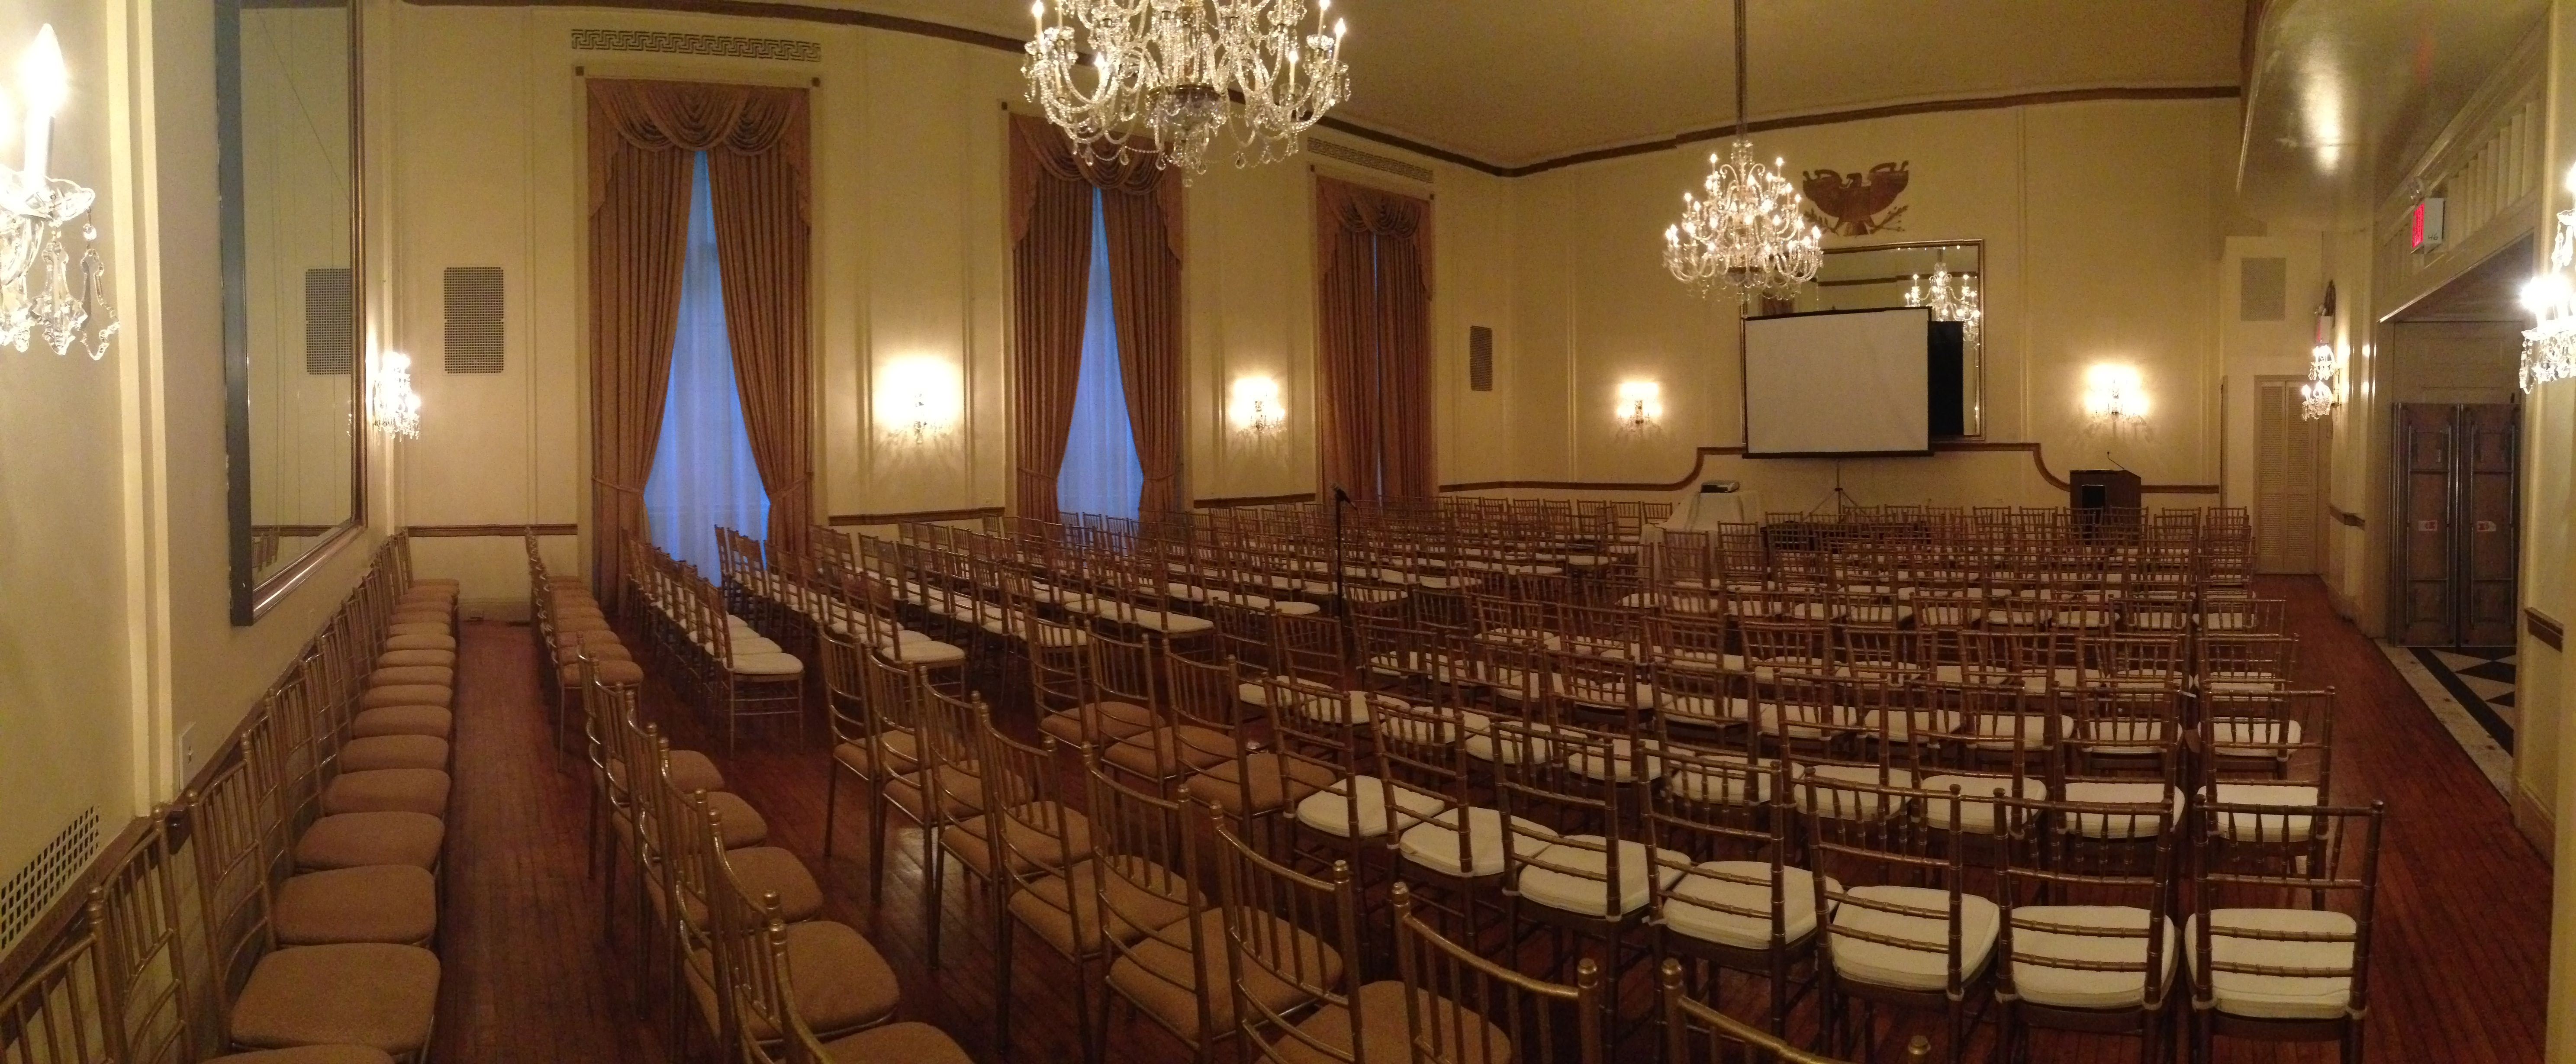 Grandballroom With Theater Seating For Corporate